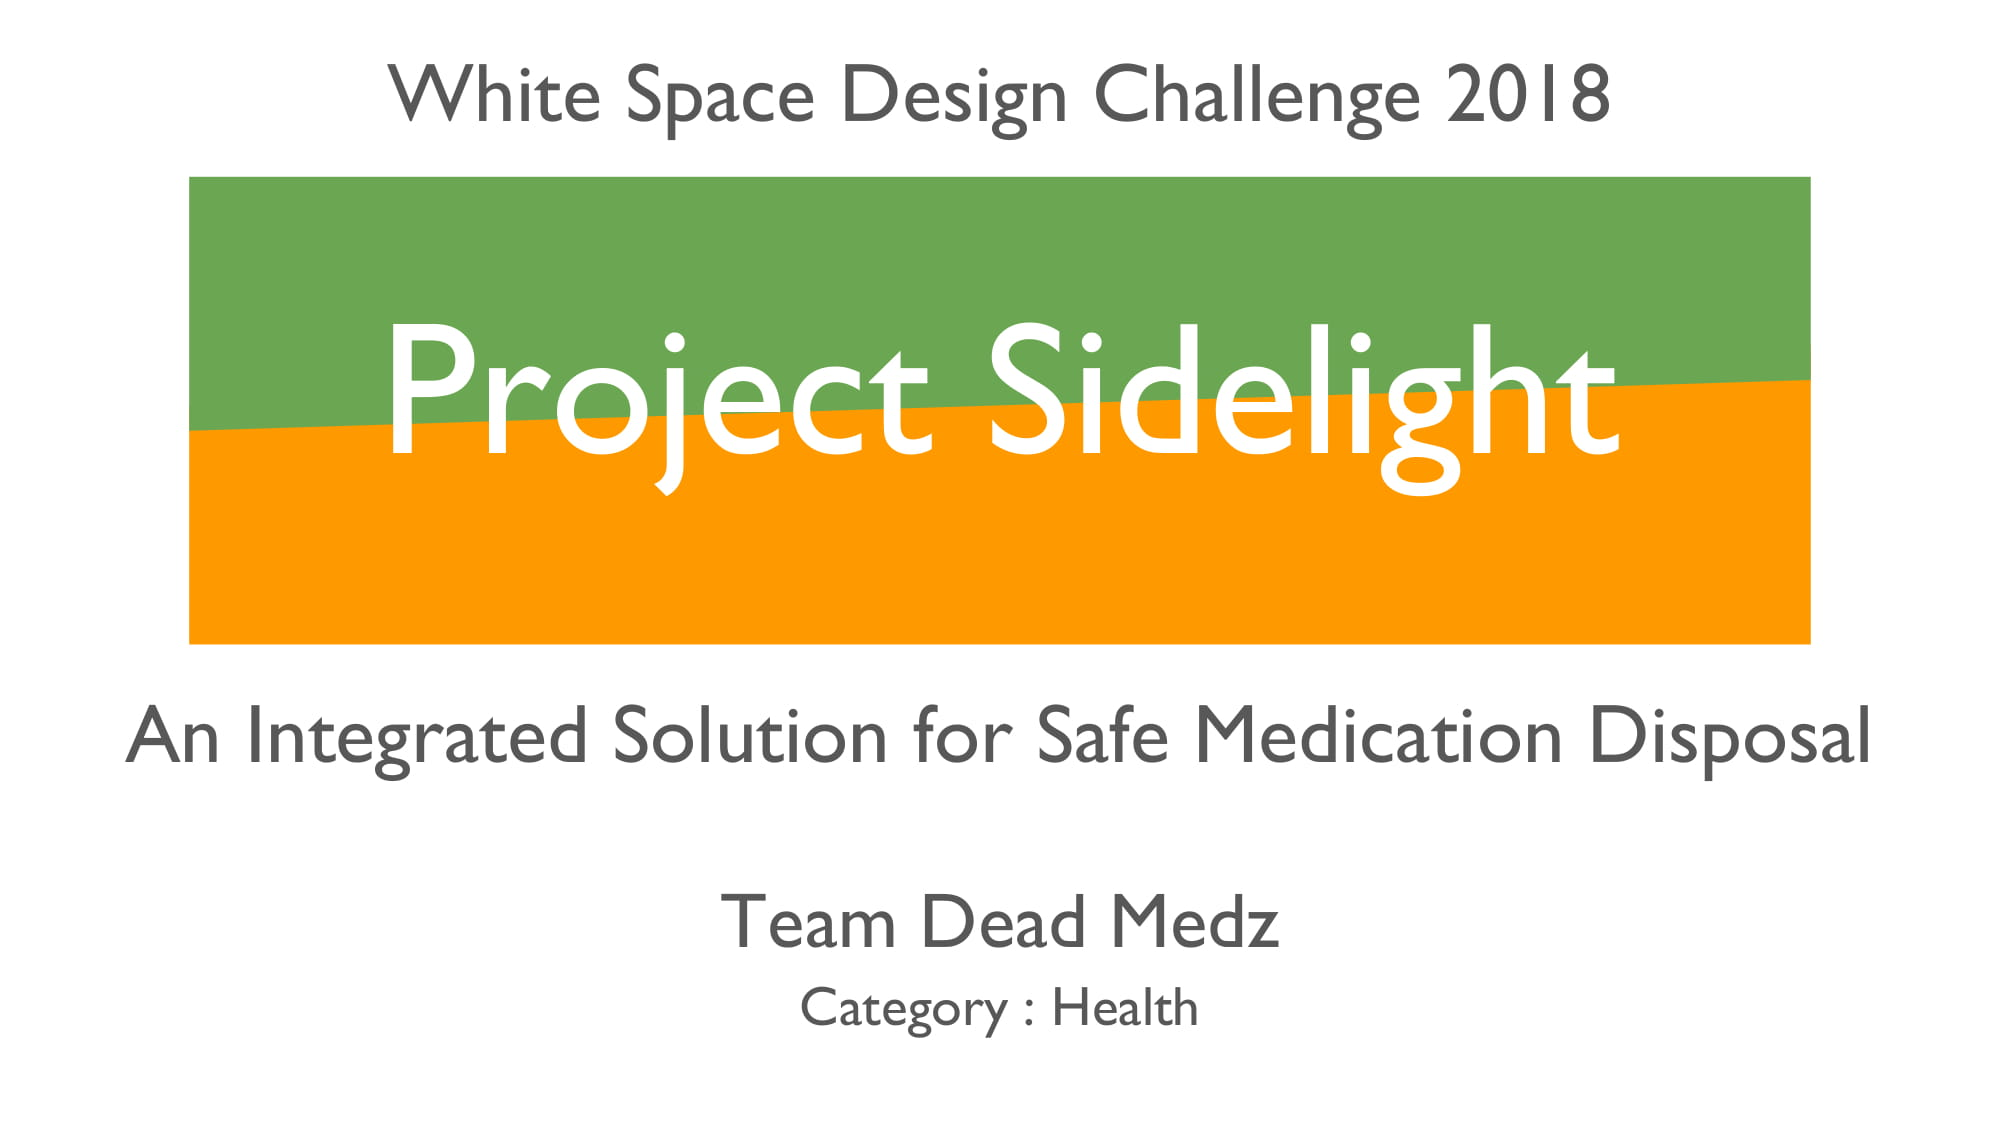 Project Sidelight WSDC Submission 2018-01.jpg